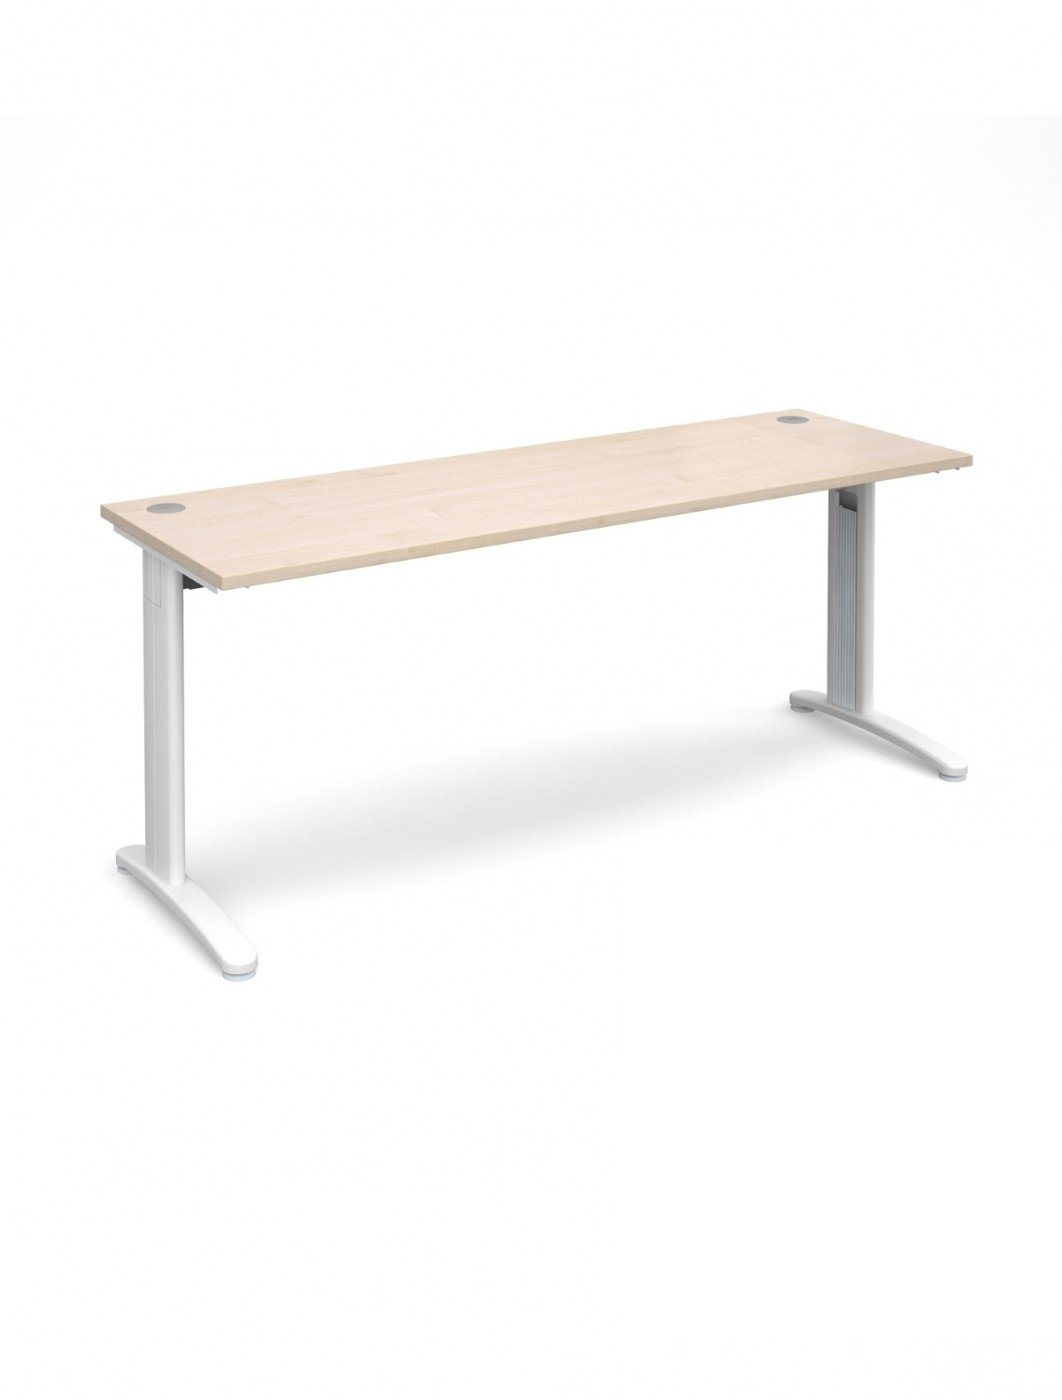 Maple Office Desk 1800x600mm Dams Tr10 Desk T618m 121 Office Furniture